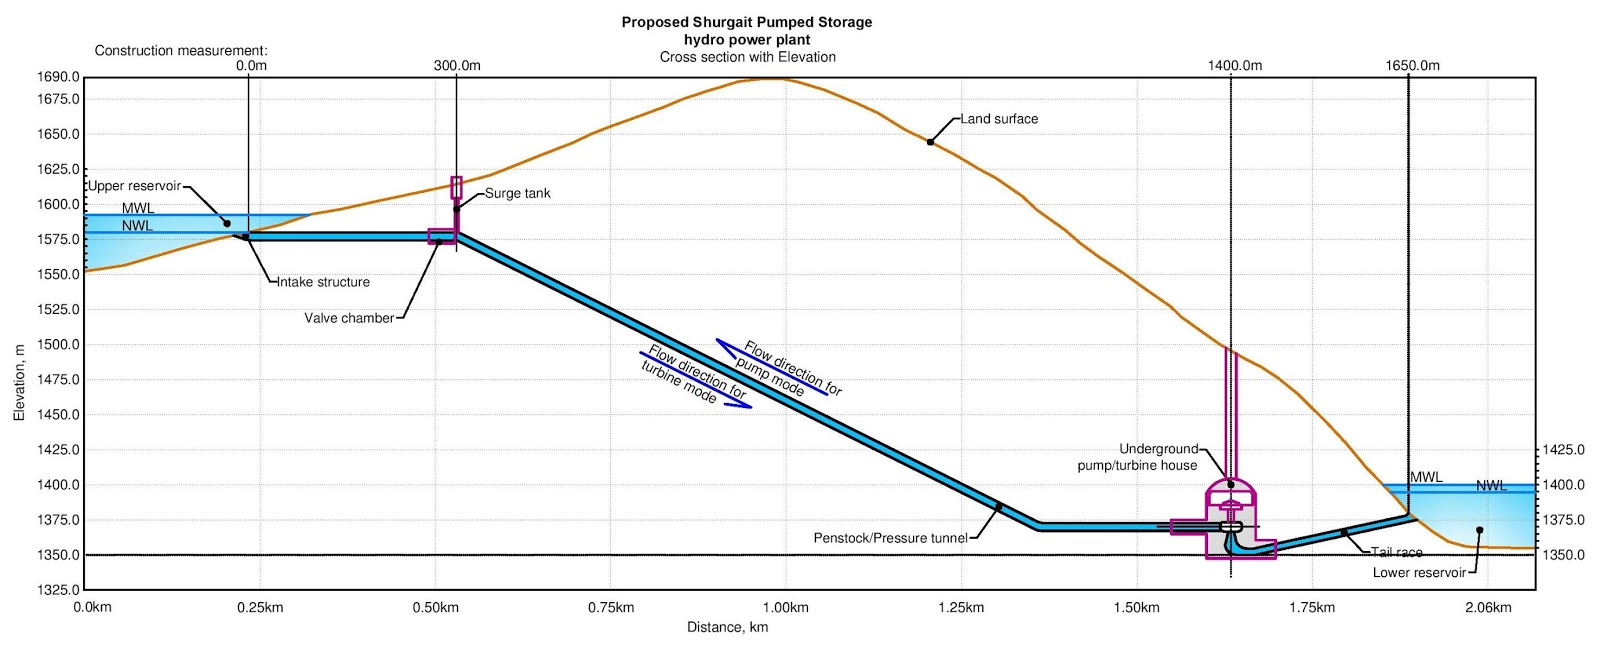 Mongolian Hydraulic Structures Fig 1 Basic Circuit Working Of A Don Figure 6 General Plan For Proposed Shurgait Pumped Storage Hydro Power